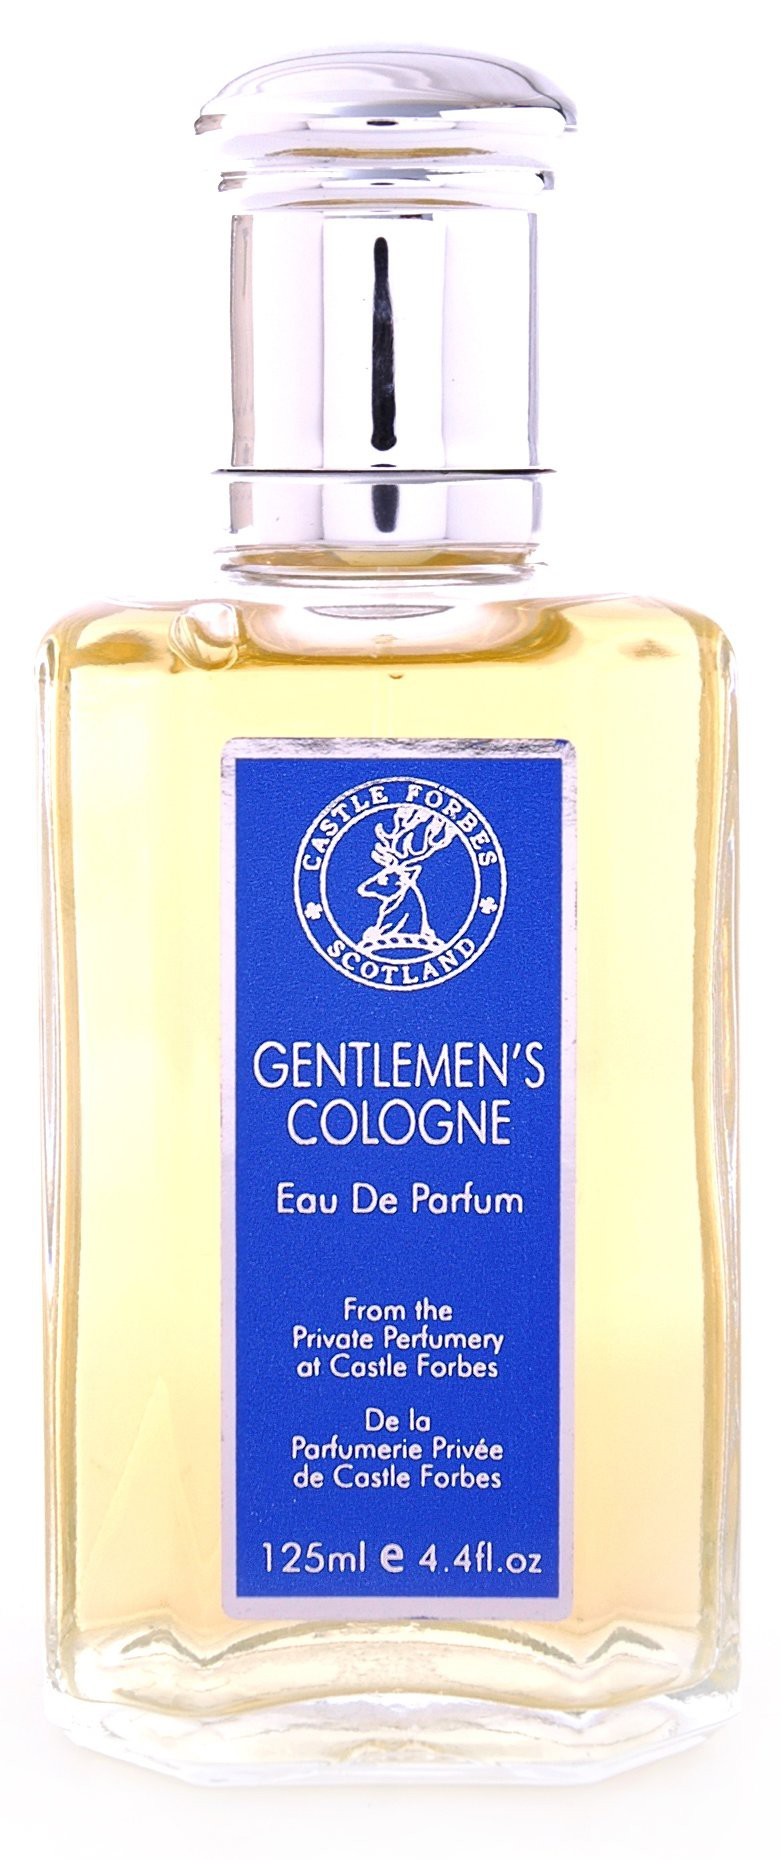 Castle Forbes Gentlemen's Cologne аромат для мужчин